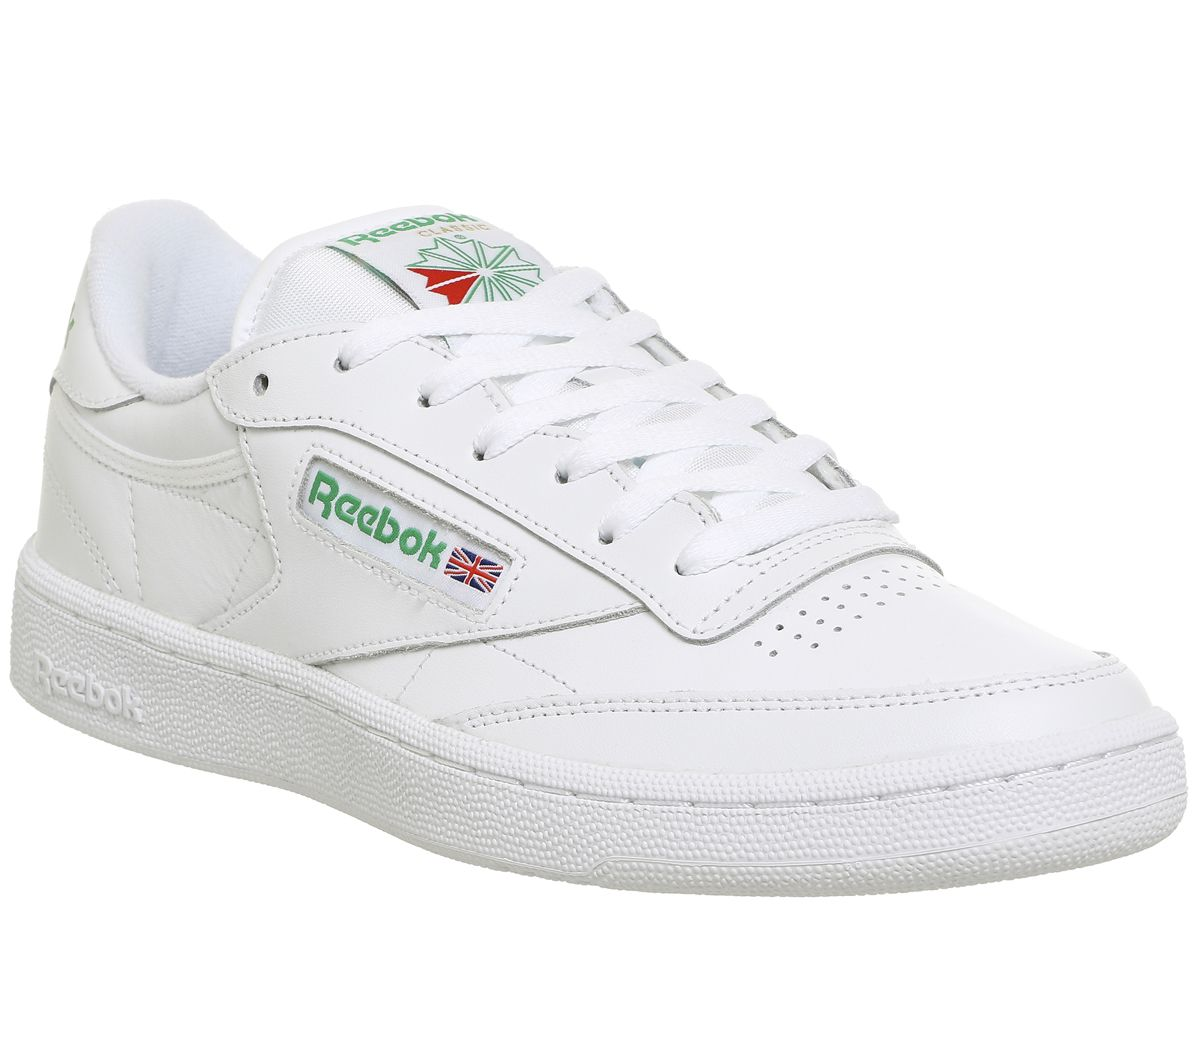 0d8f346784971 Reebok Club C 85 White Green - His trainers